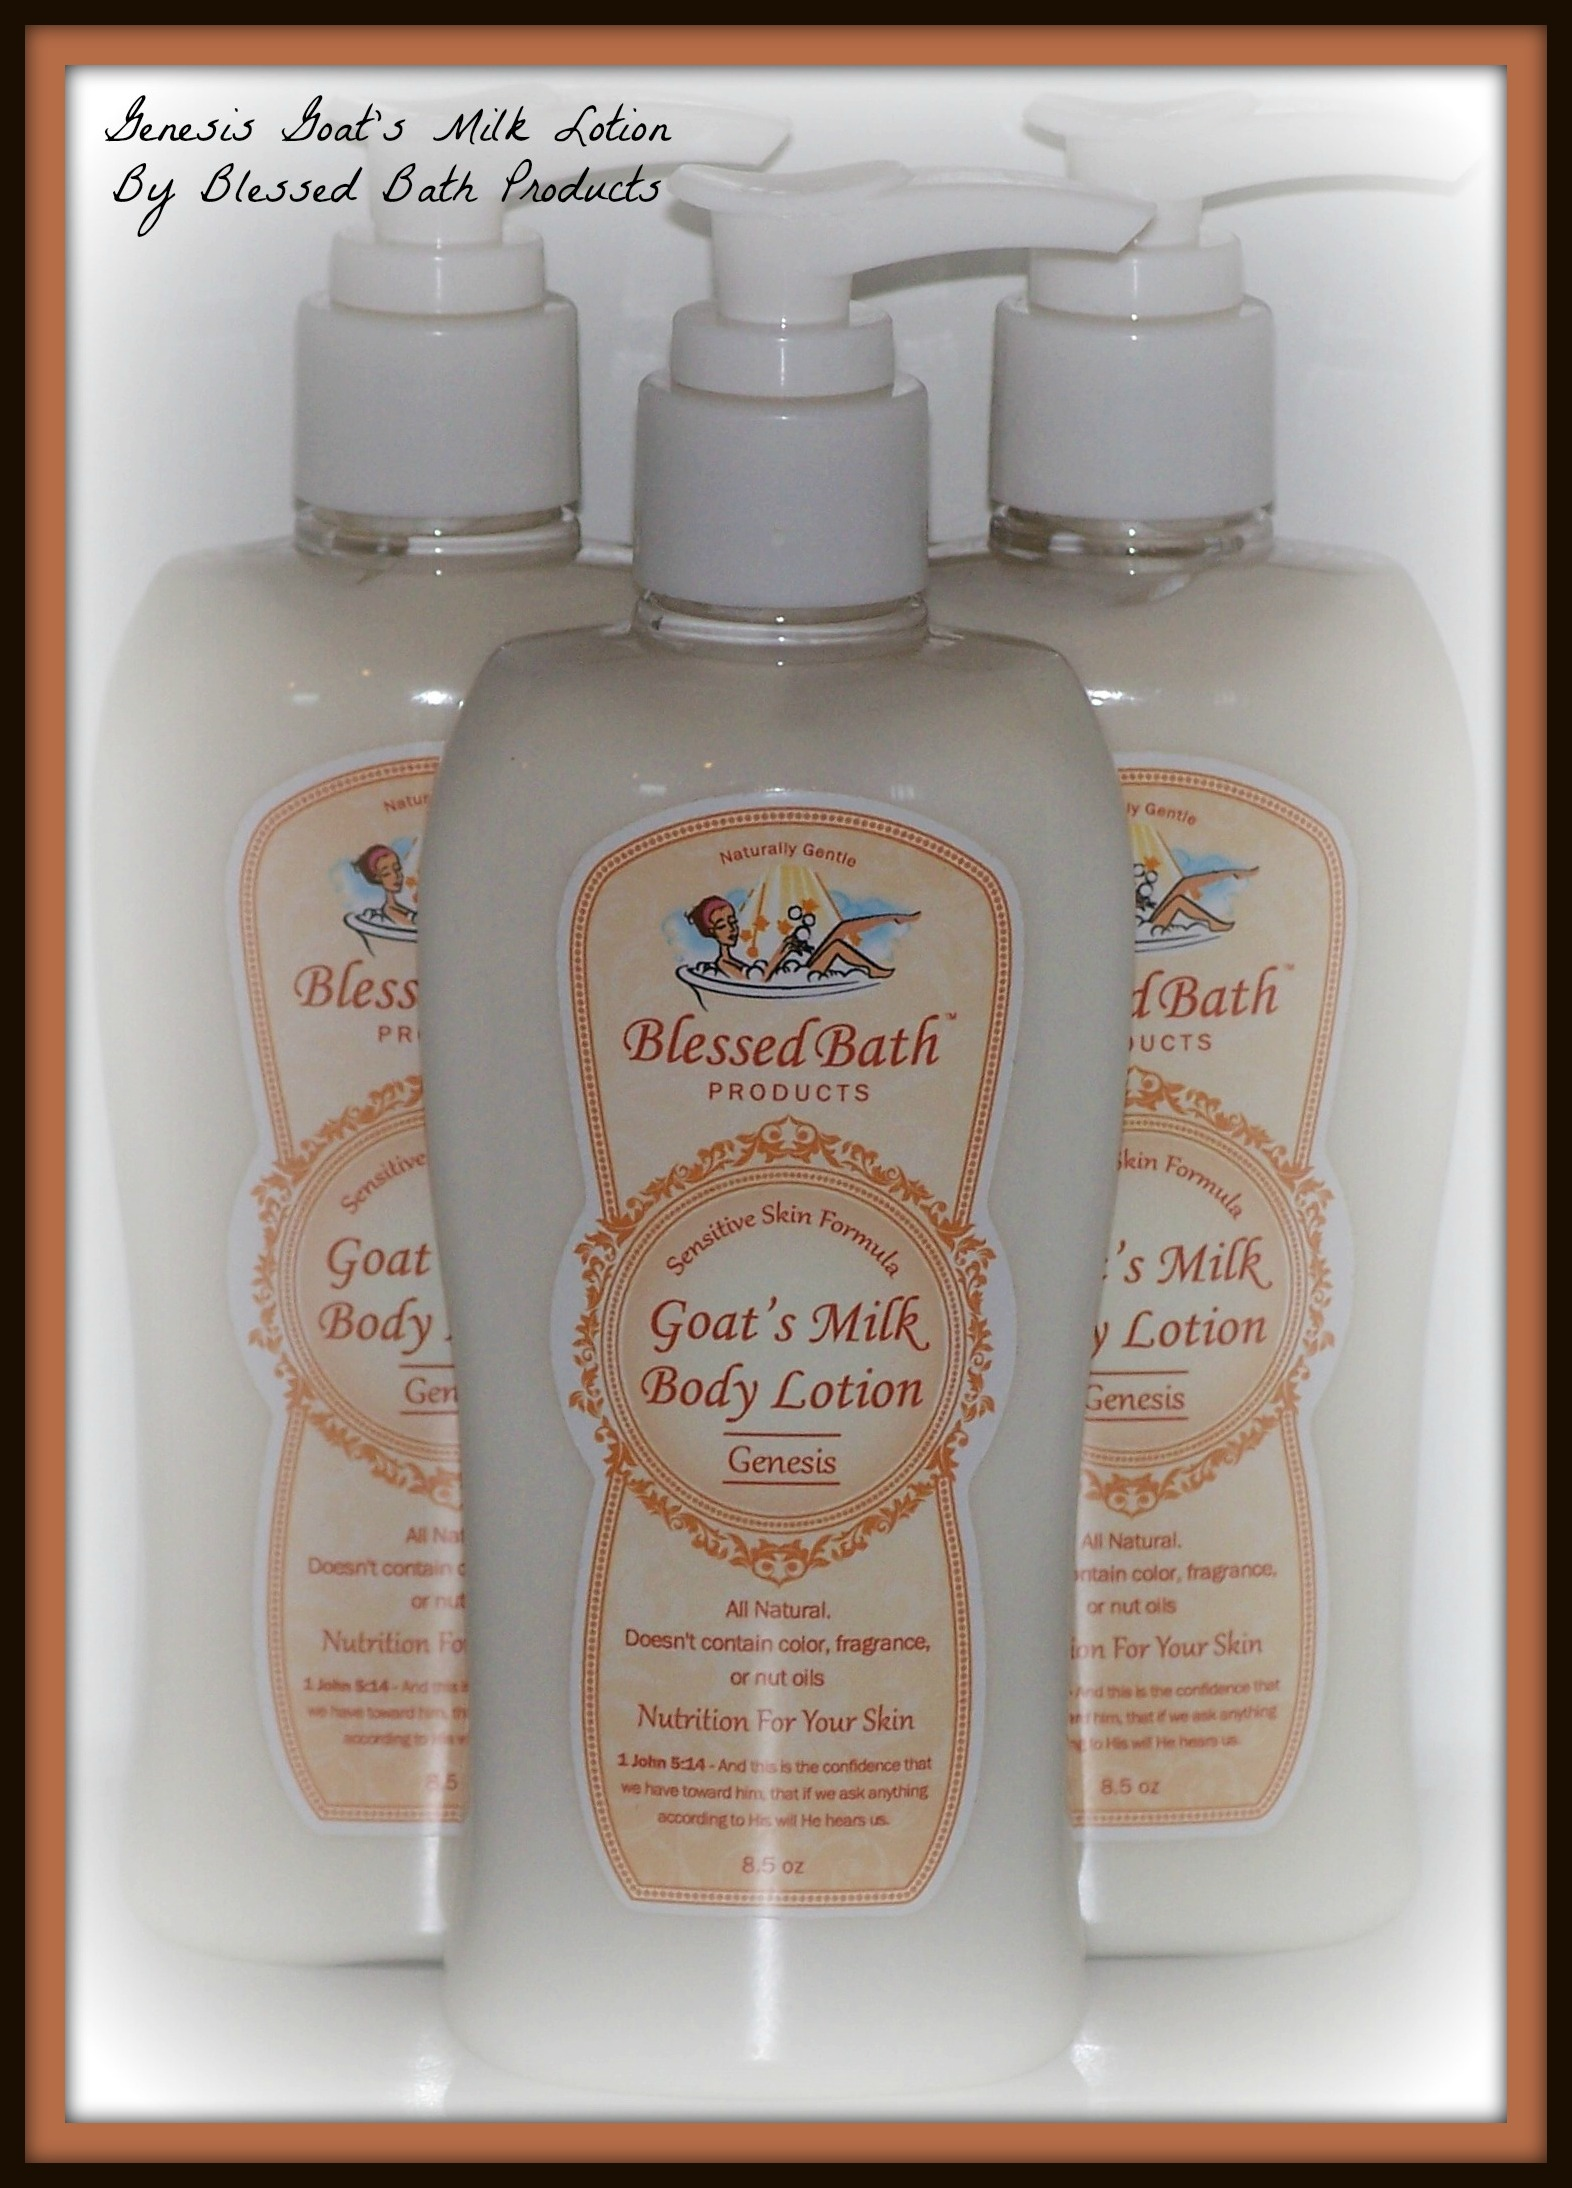 Genesis Goats Milk Lotion